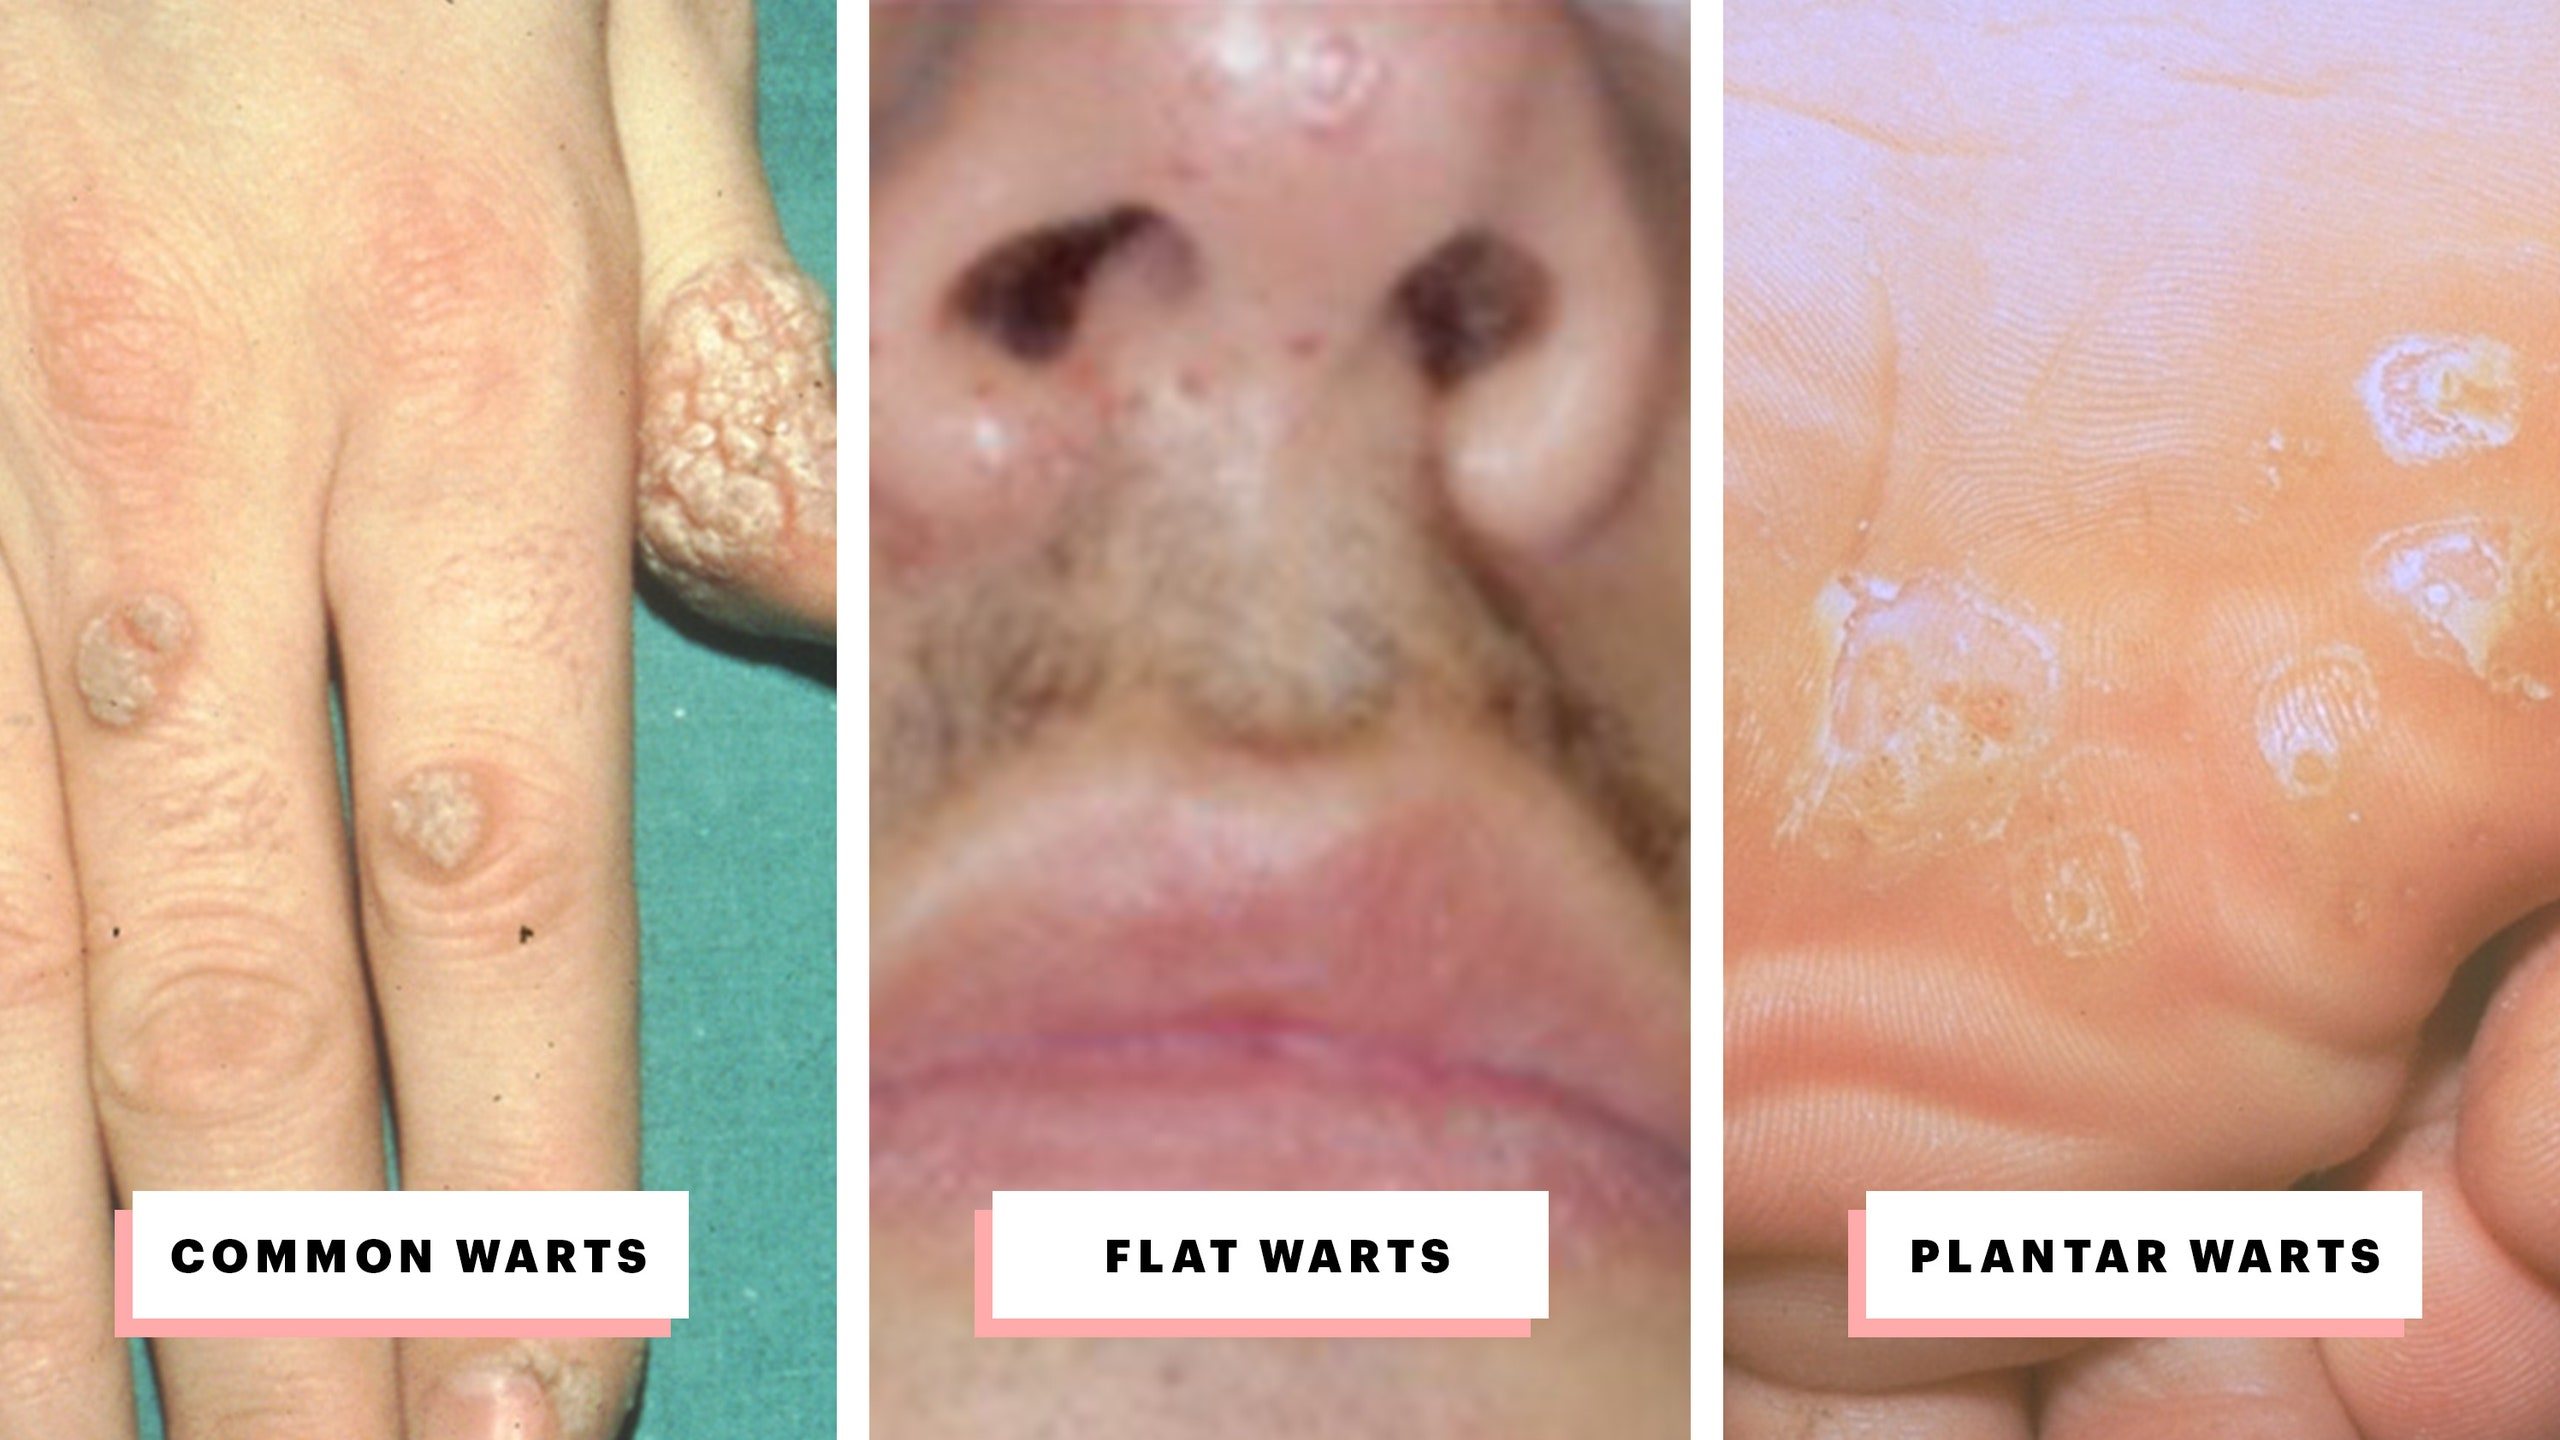 can warts on hands be transferred to genital area